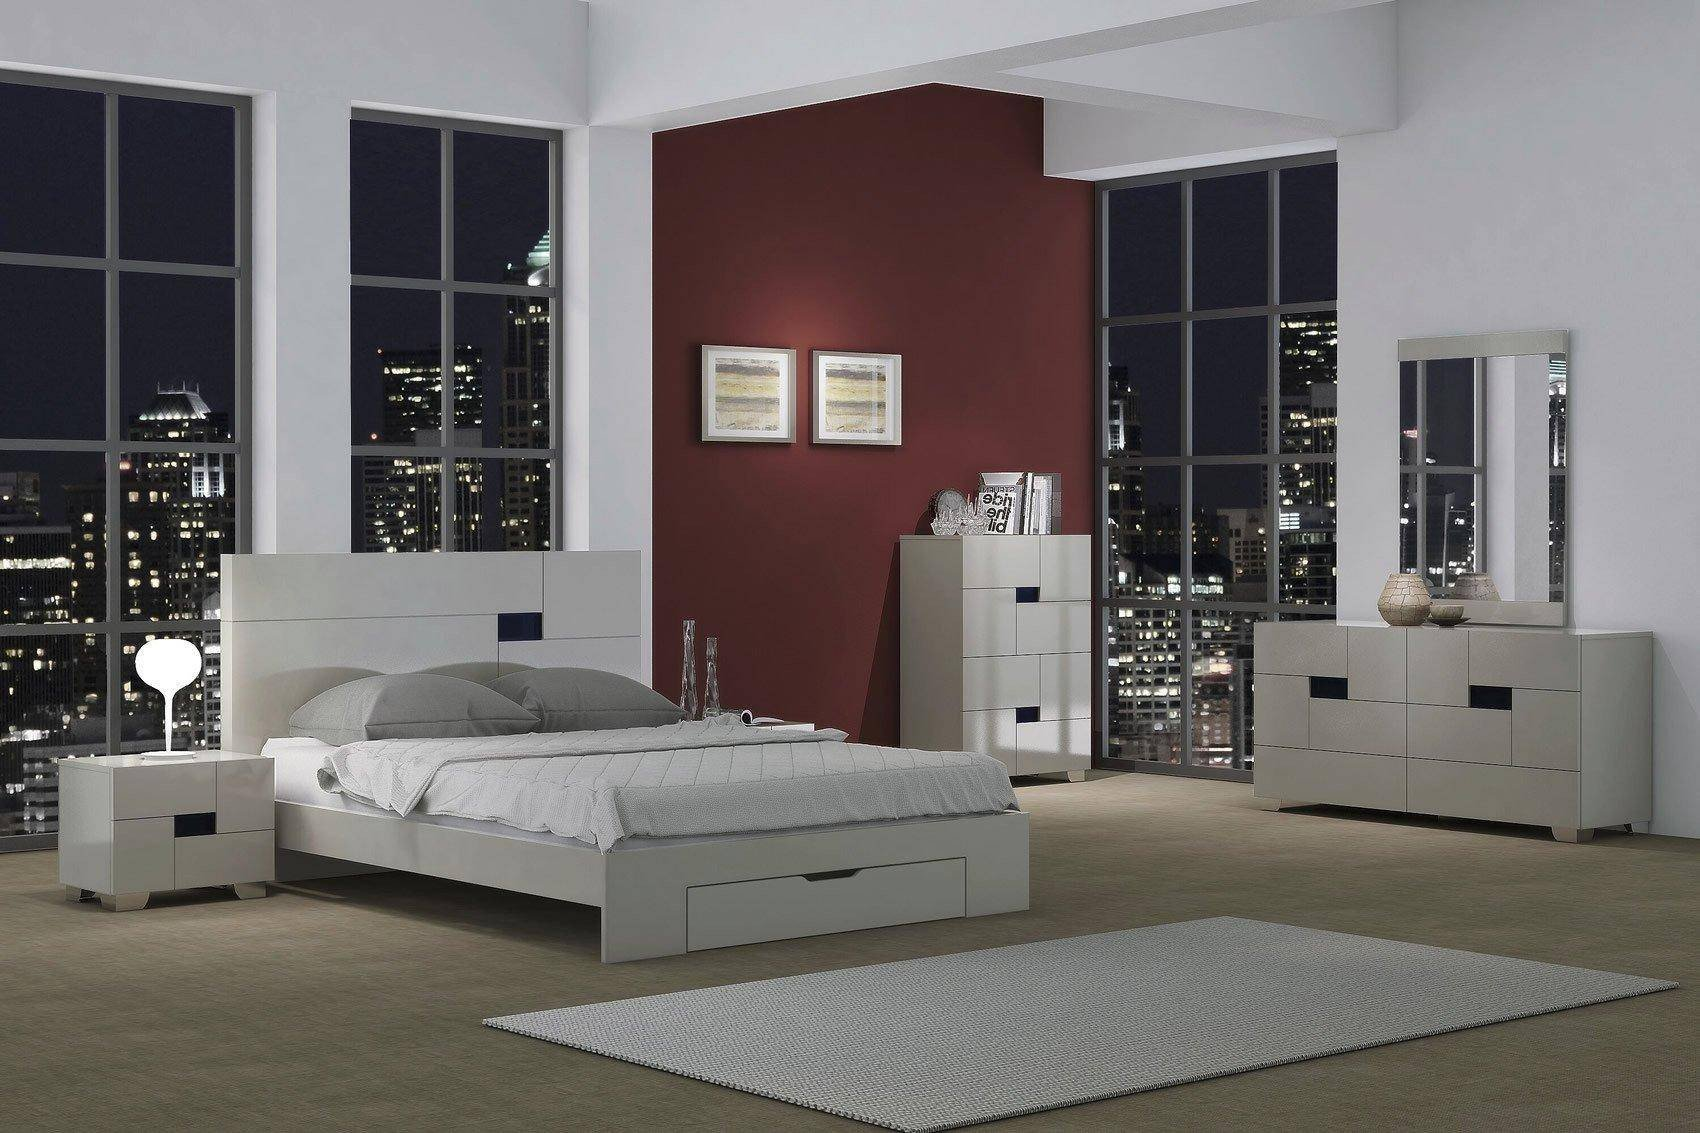 Queen Bedroom Set with Storage Drawers Awesome Contemporary Light Gray Lacquer Storage Queen Bedroom Set